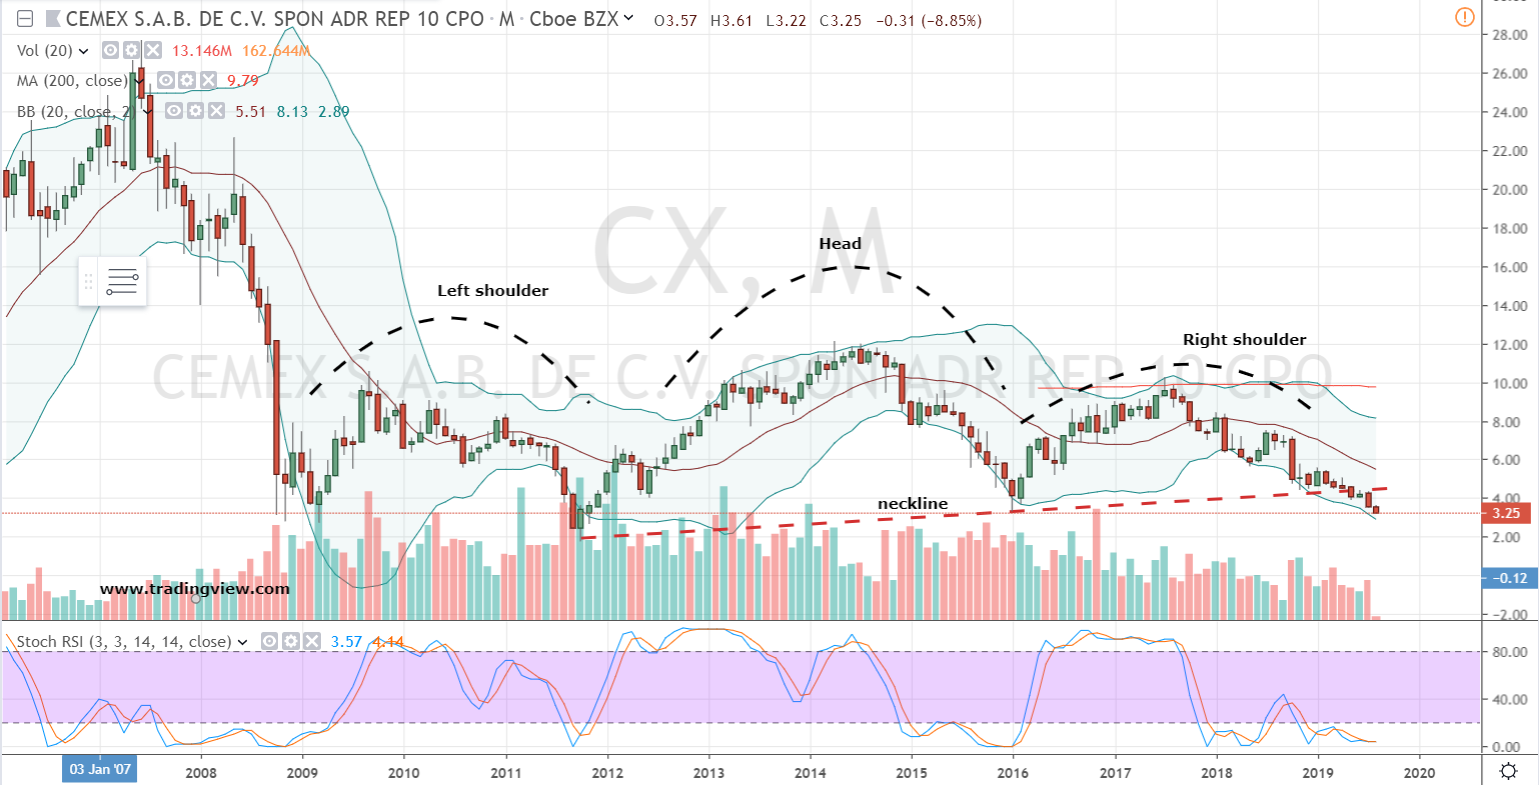 Infrastructure Stocks: Cemex (CX)